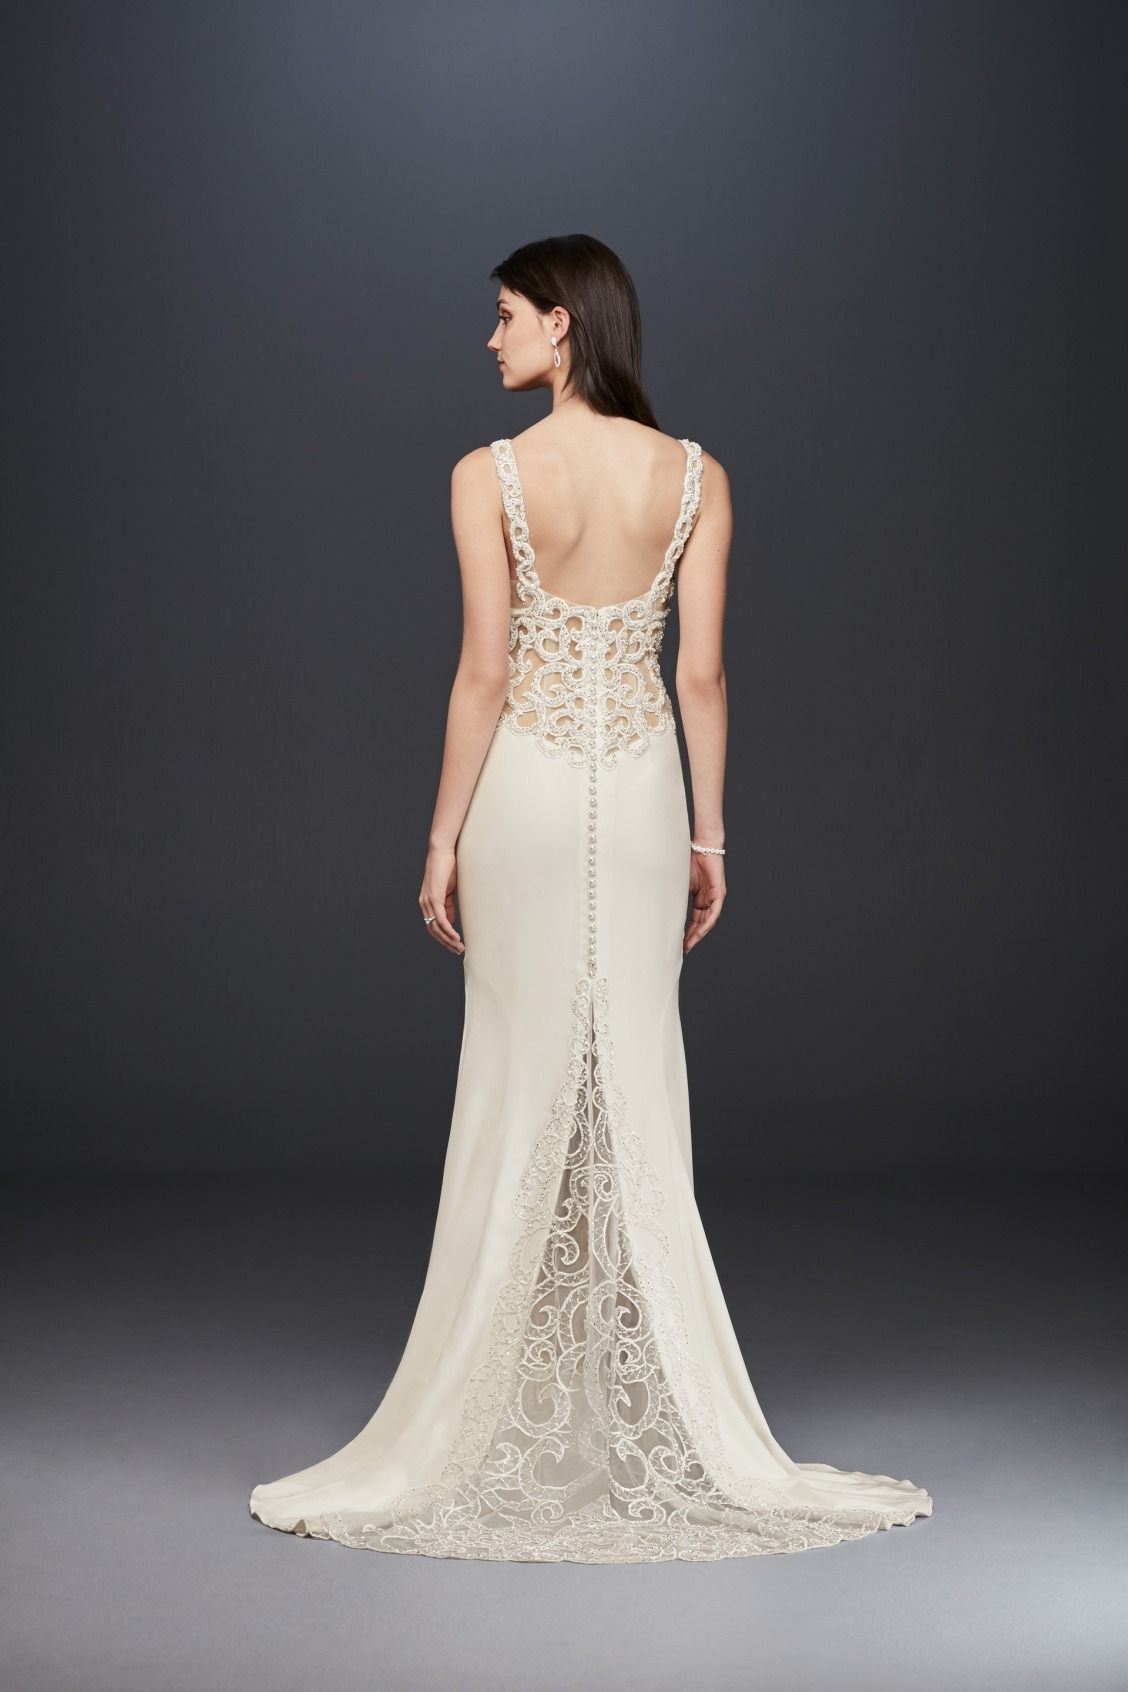 Galina signature wedding dress  Swirling lace perfection The unique lace pattern on this wedding